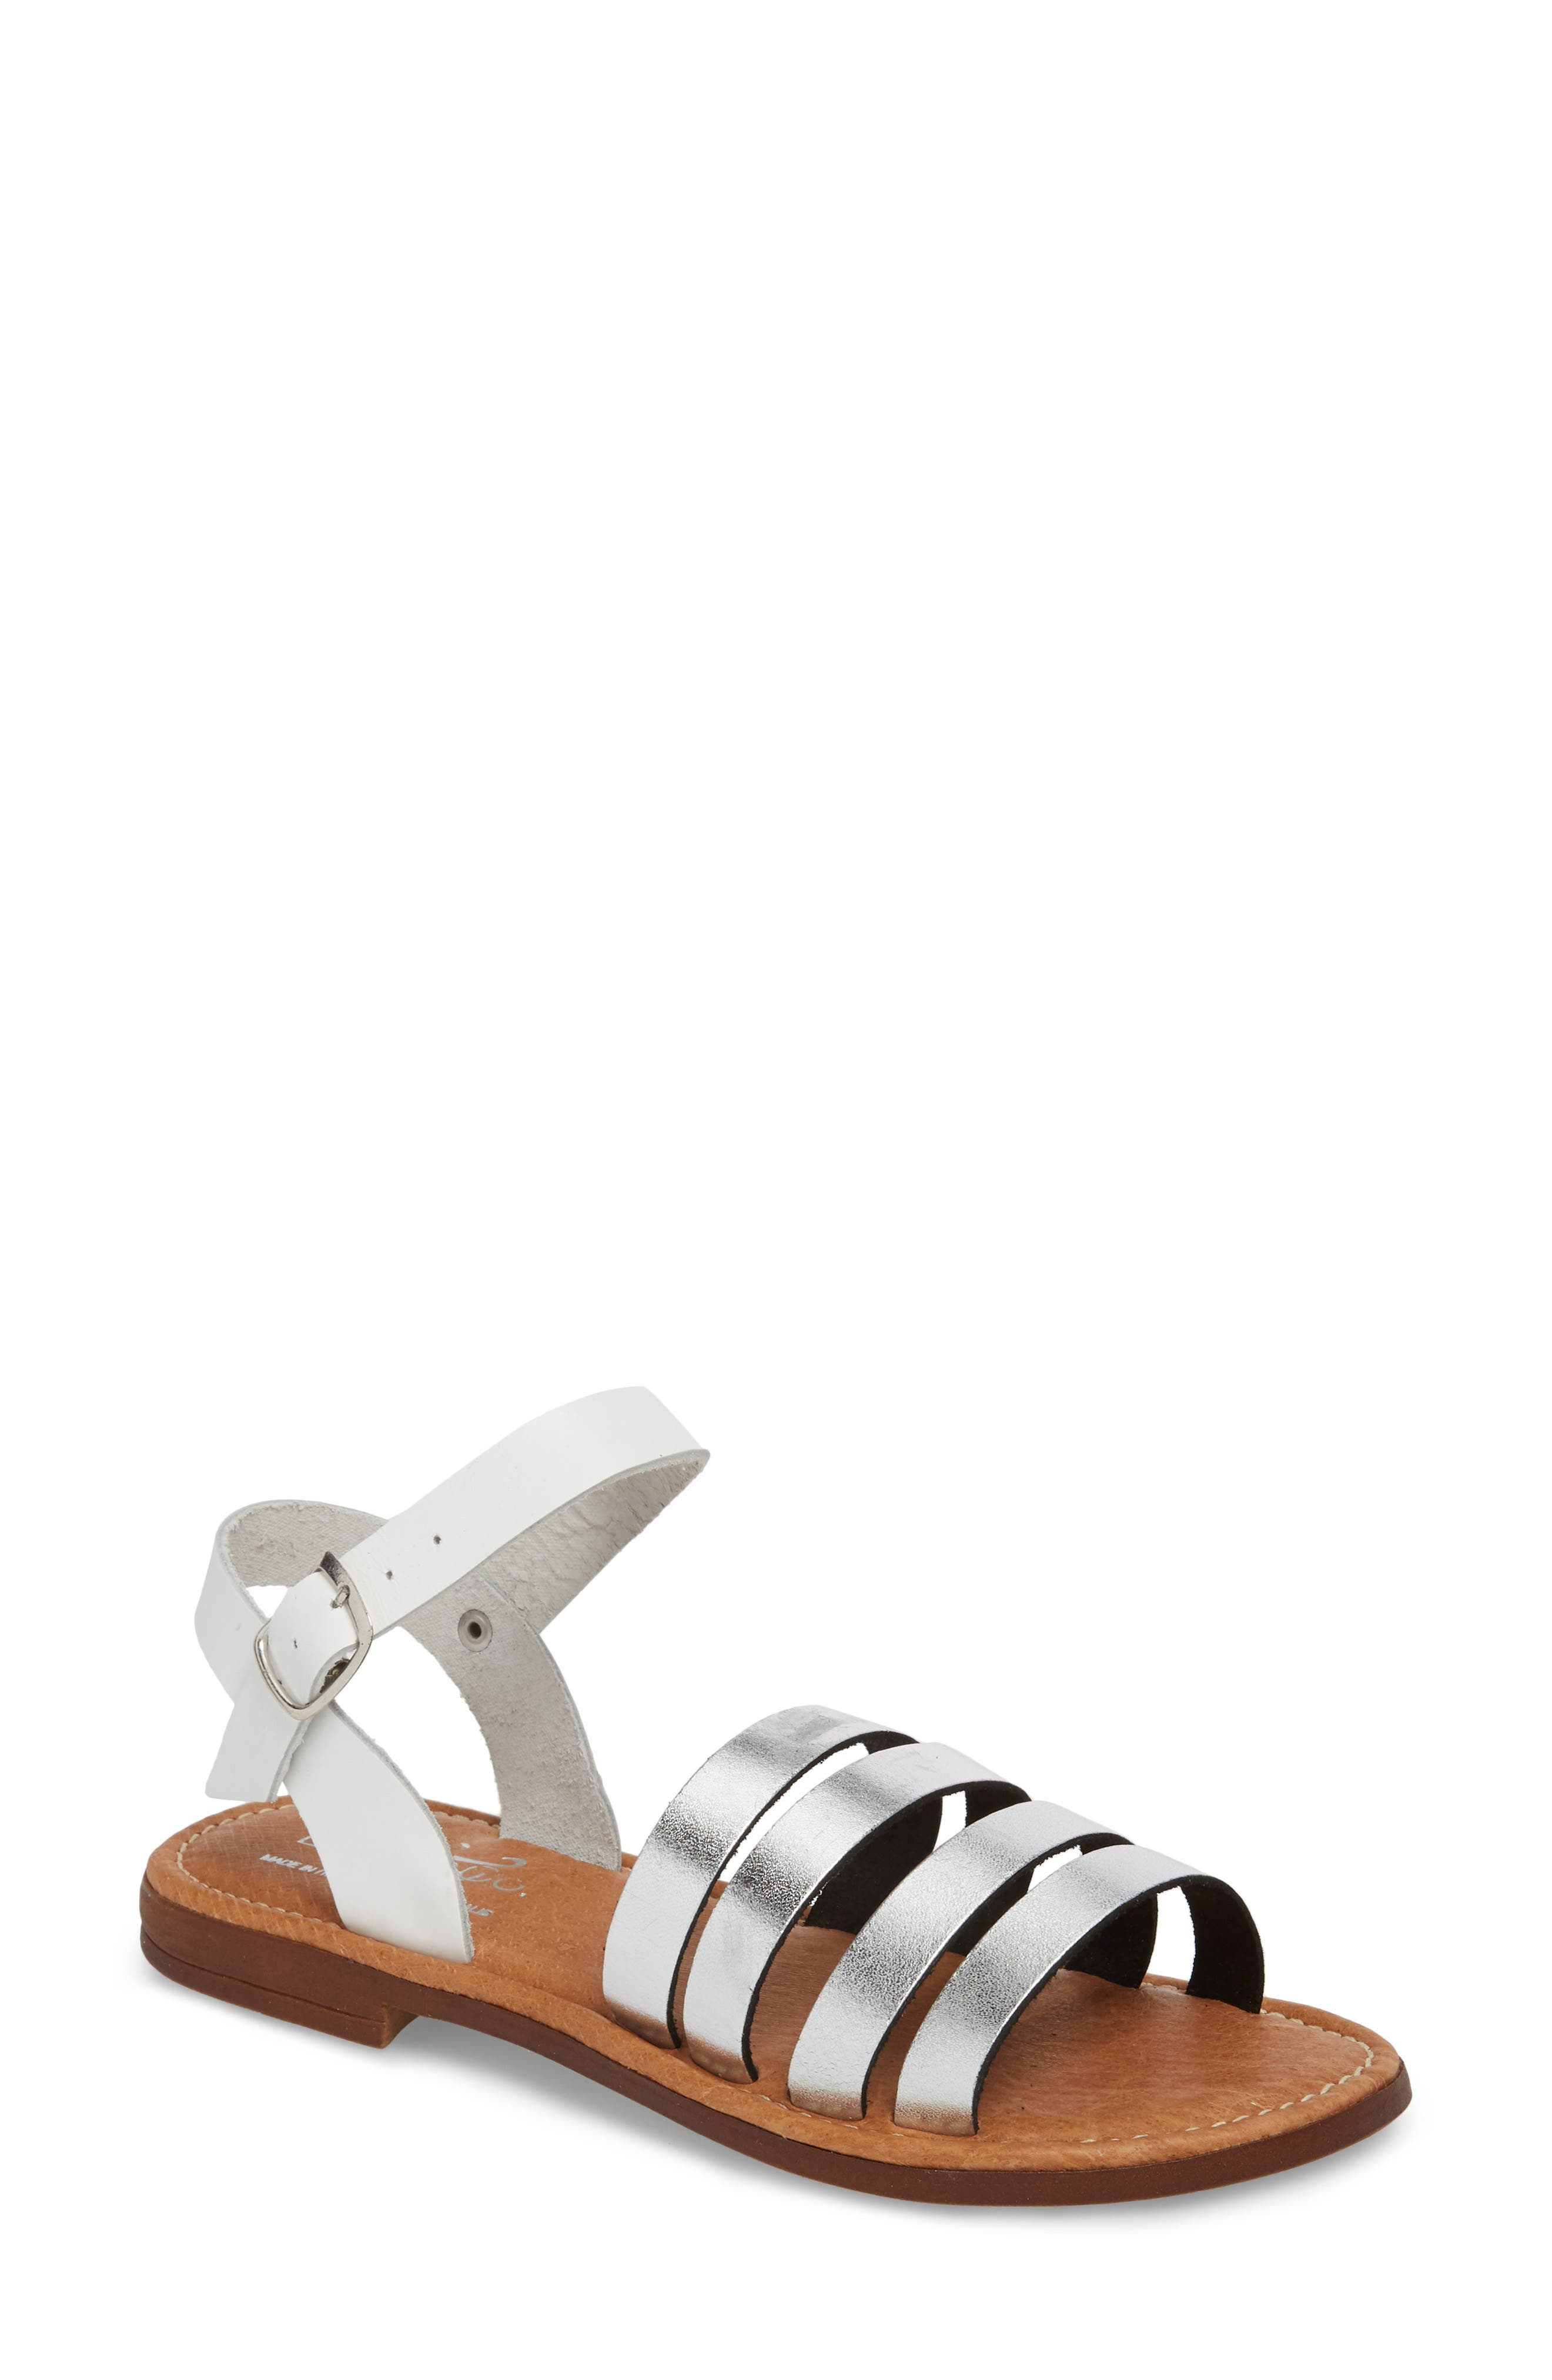 Isle Sandal,                             Main thumbnail 1, color,                             Silver/ White Leather